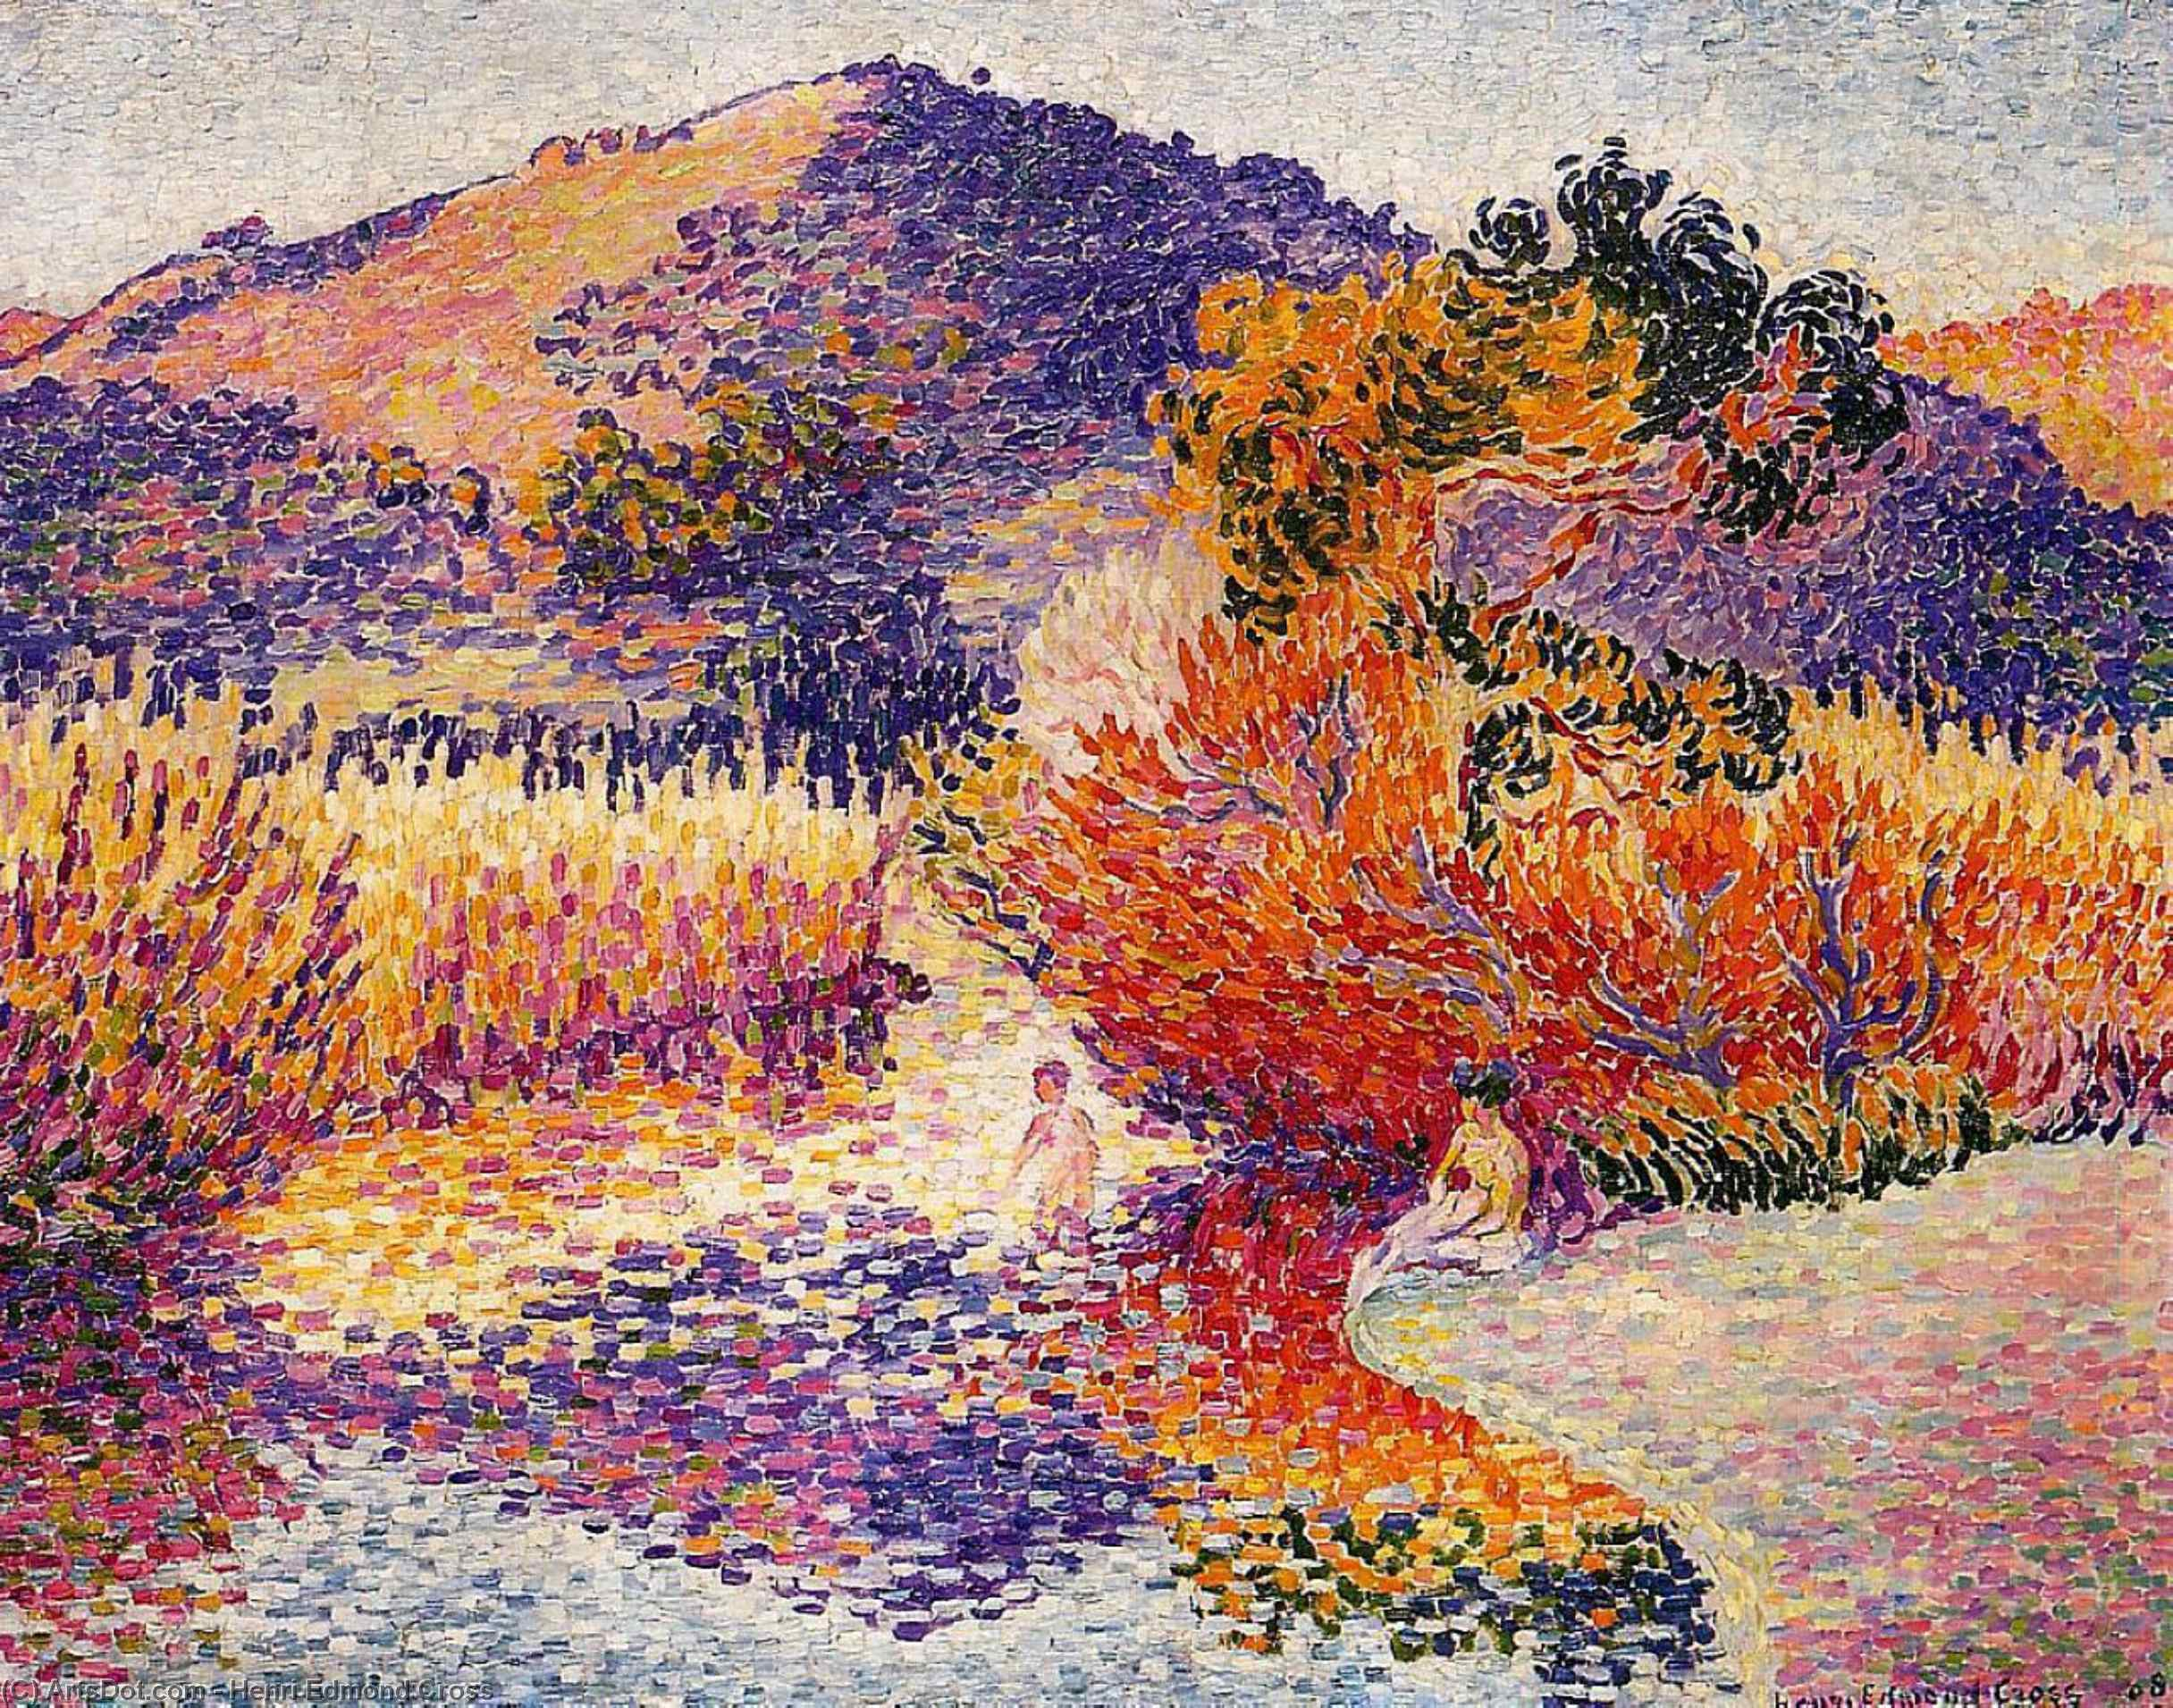 Fiume nel Saint-cir, olio su tela di Henri Edmond Cross (1856-1910, France)